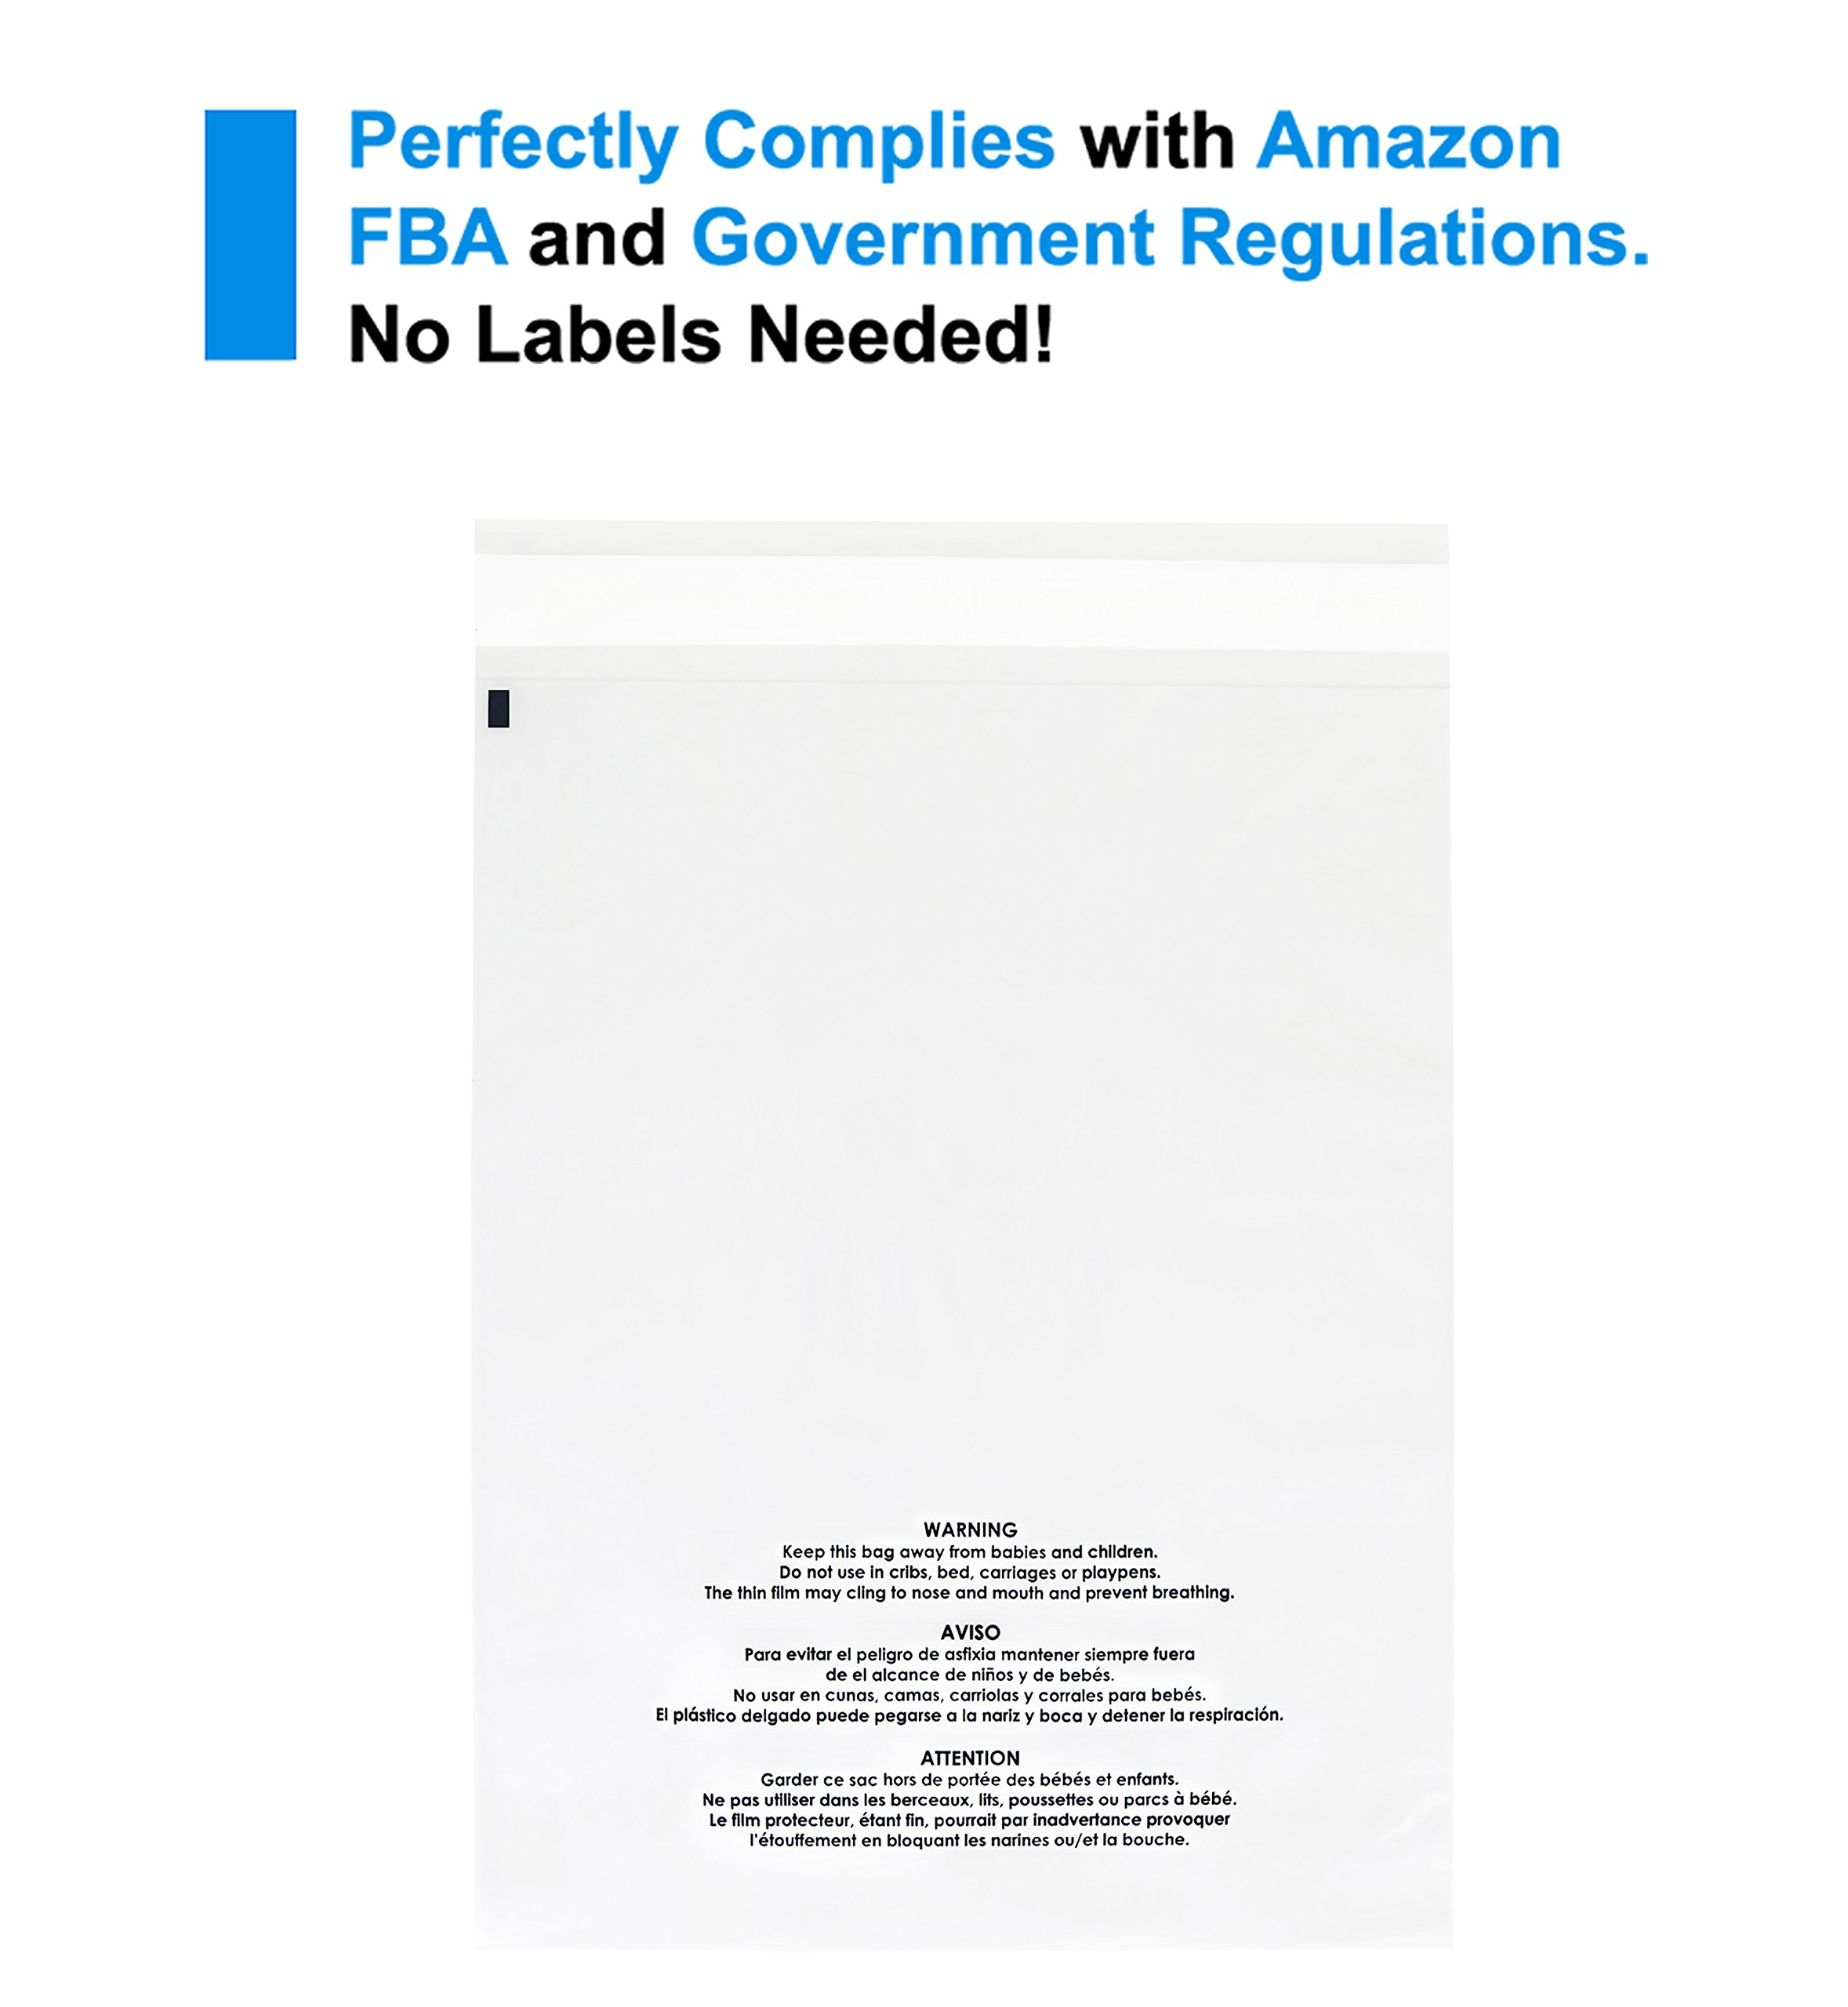 100 Count - 9 X 12 Self Seal 1.5 Mil Clear Plastic Poly Bags with Suffocation Warning - Permanent Adhesive by Spartan Industrial (More Sizes Available) by Spartan Industrial (Image #7)